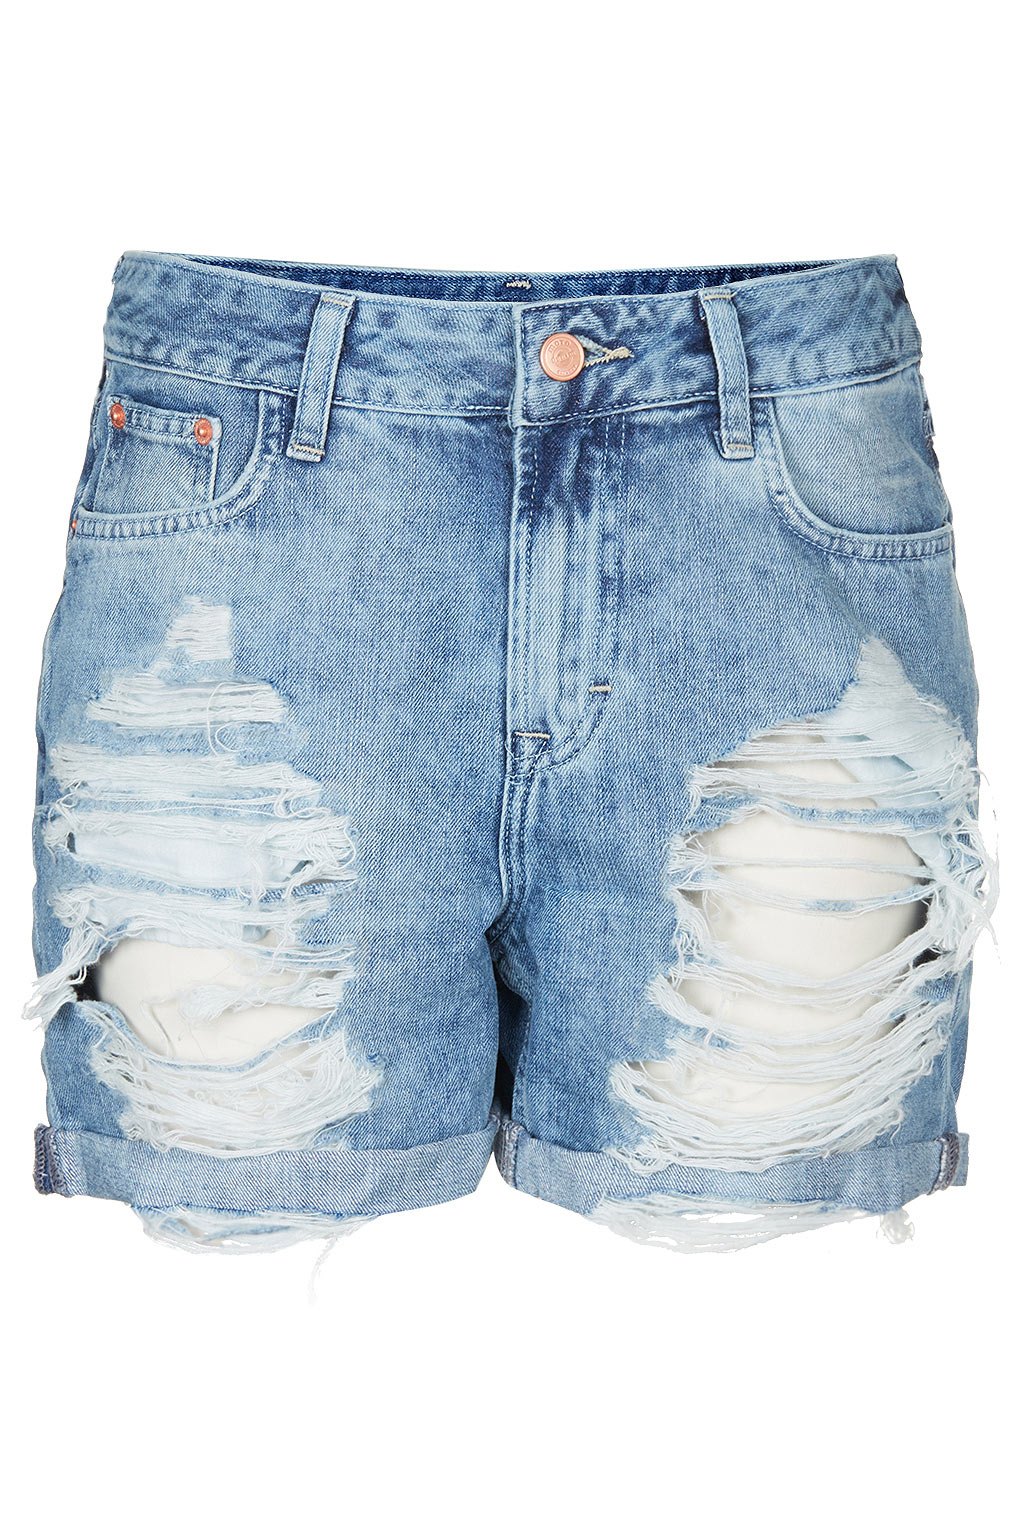 Boys' Denim Shorts. Average rating: 0 out of 5 stars, based on 0 reviews Write a review. Kids From Garanimals. Walmart # Clearance. This button opens a dialog that displays additional images for this product with the option to zoom in or out. Tell us if something is incorrect. Back.